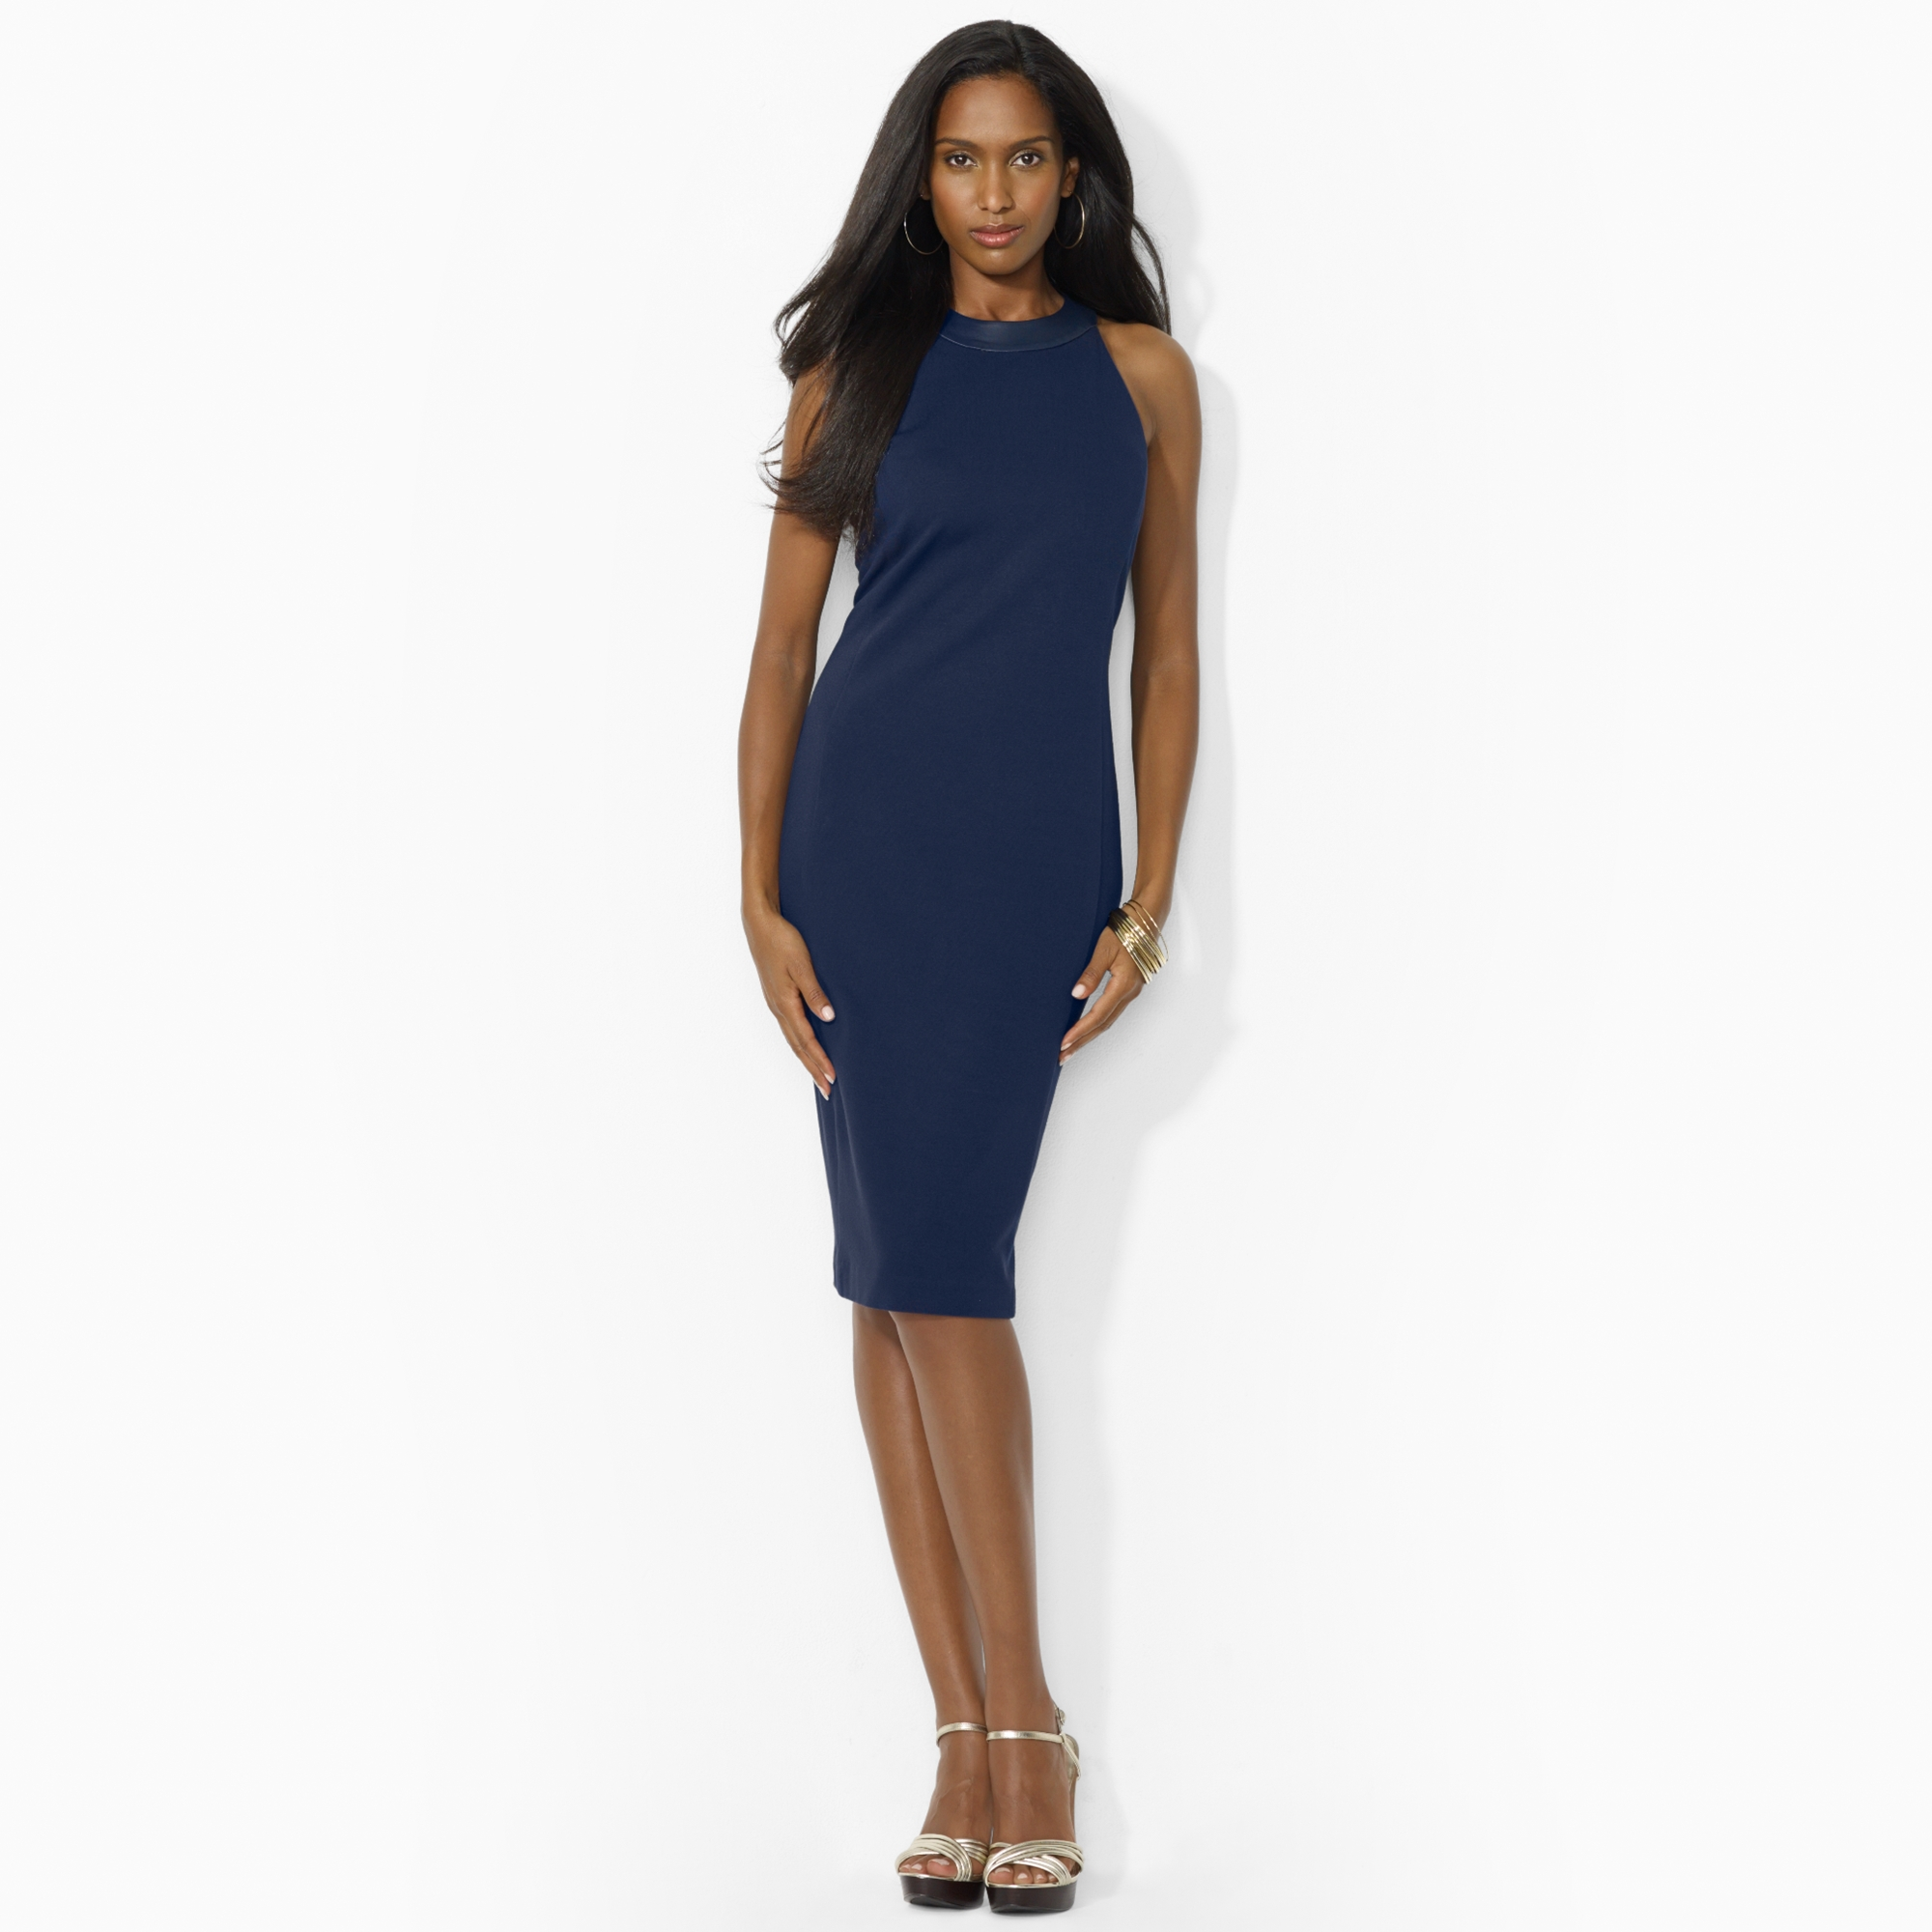 image of ralph lauren navy dress